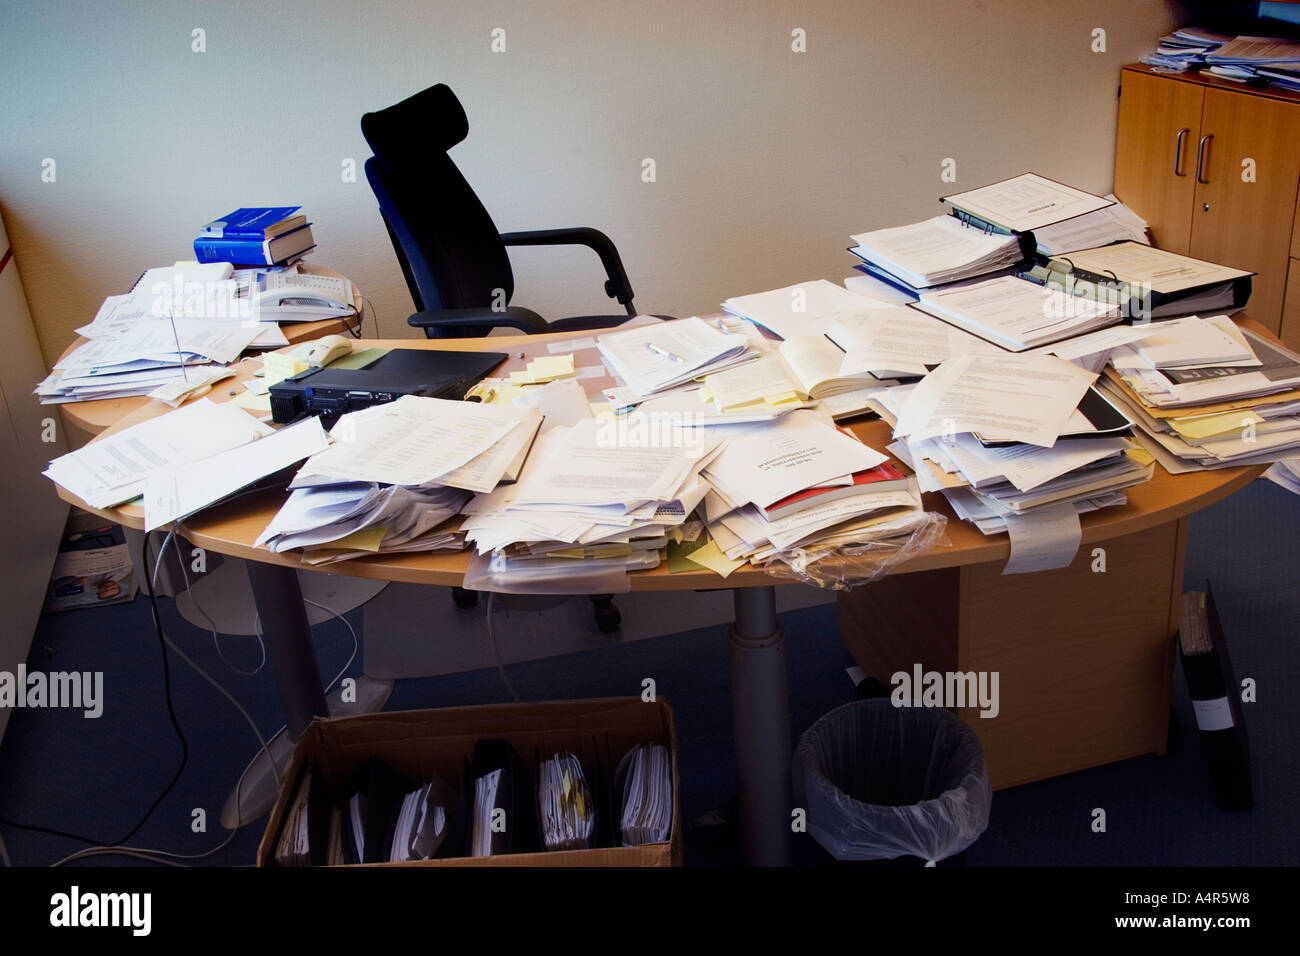 messy desk at office Stock Photo, Royalty Free Image: 6346583 - Alamy